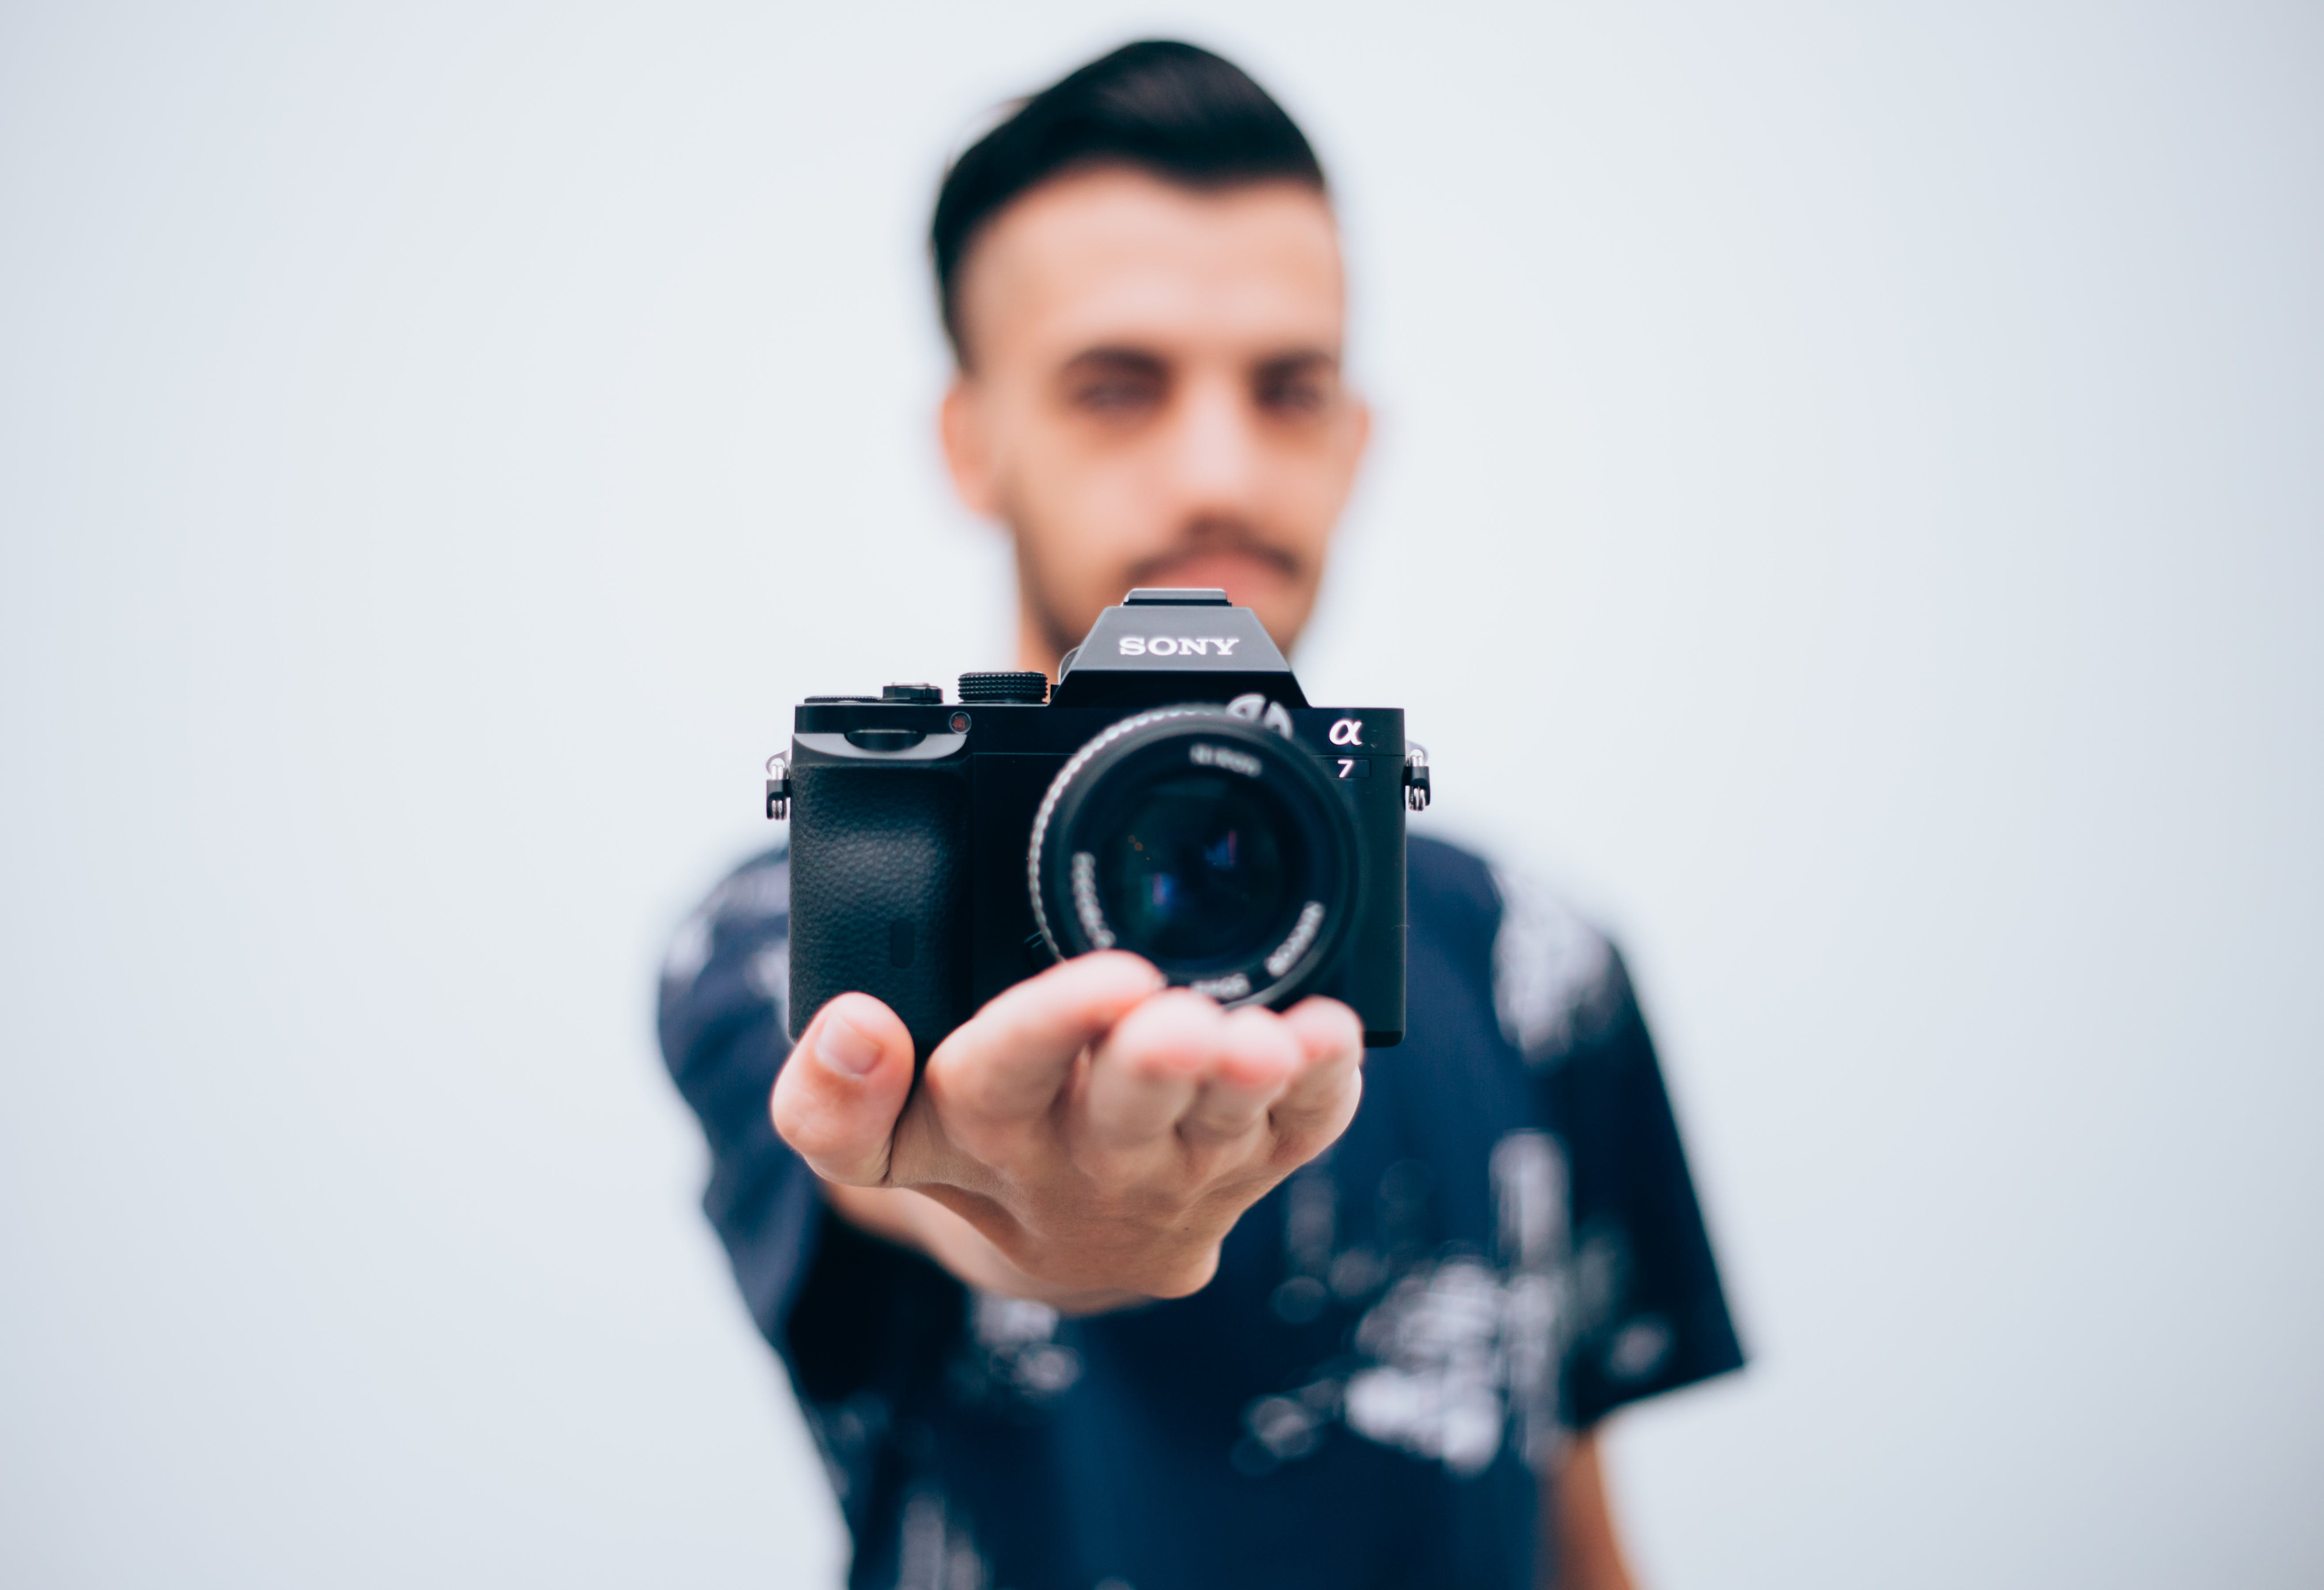 Person Holding Sony Dslr Camera